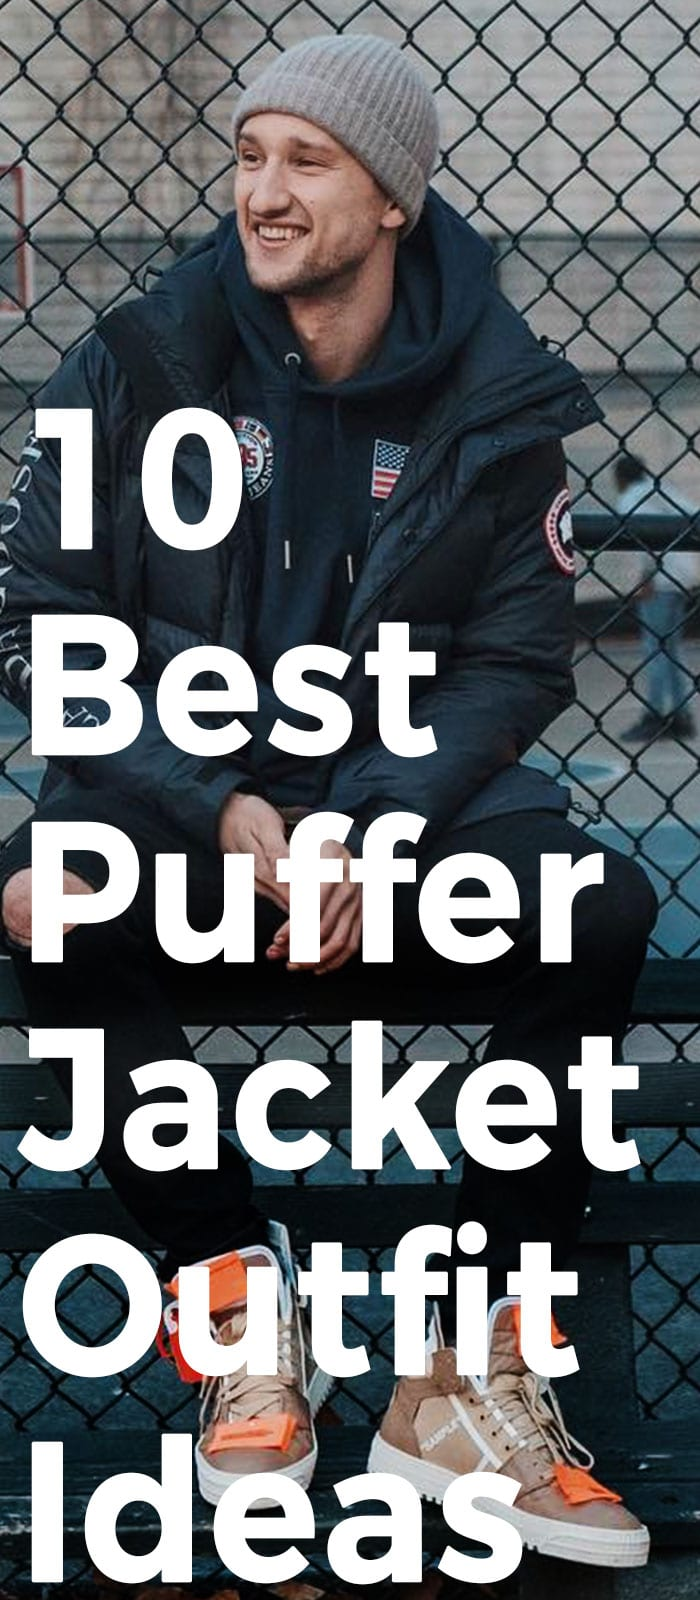 10 Best Puffer Jacket Outfit Ideas!